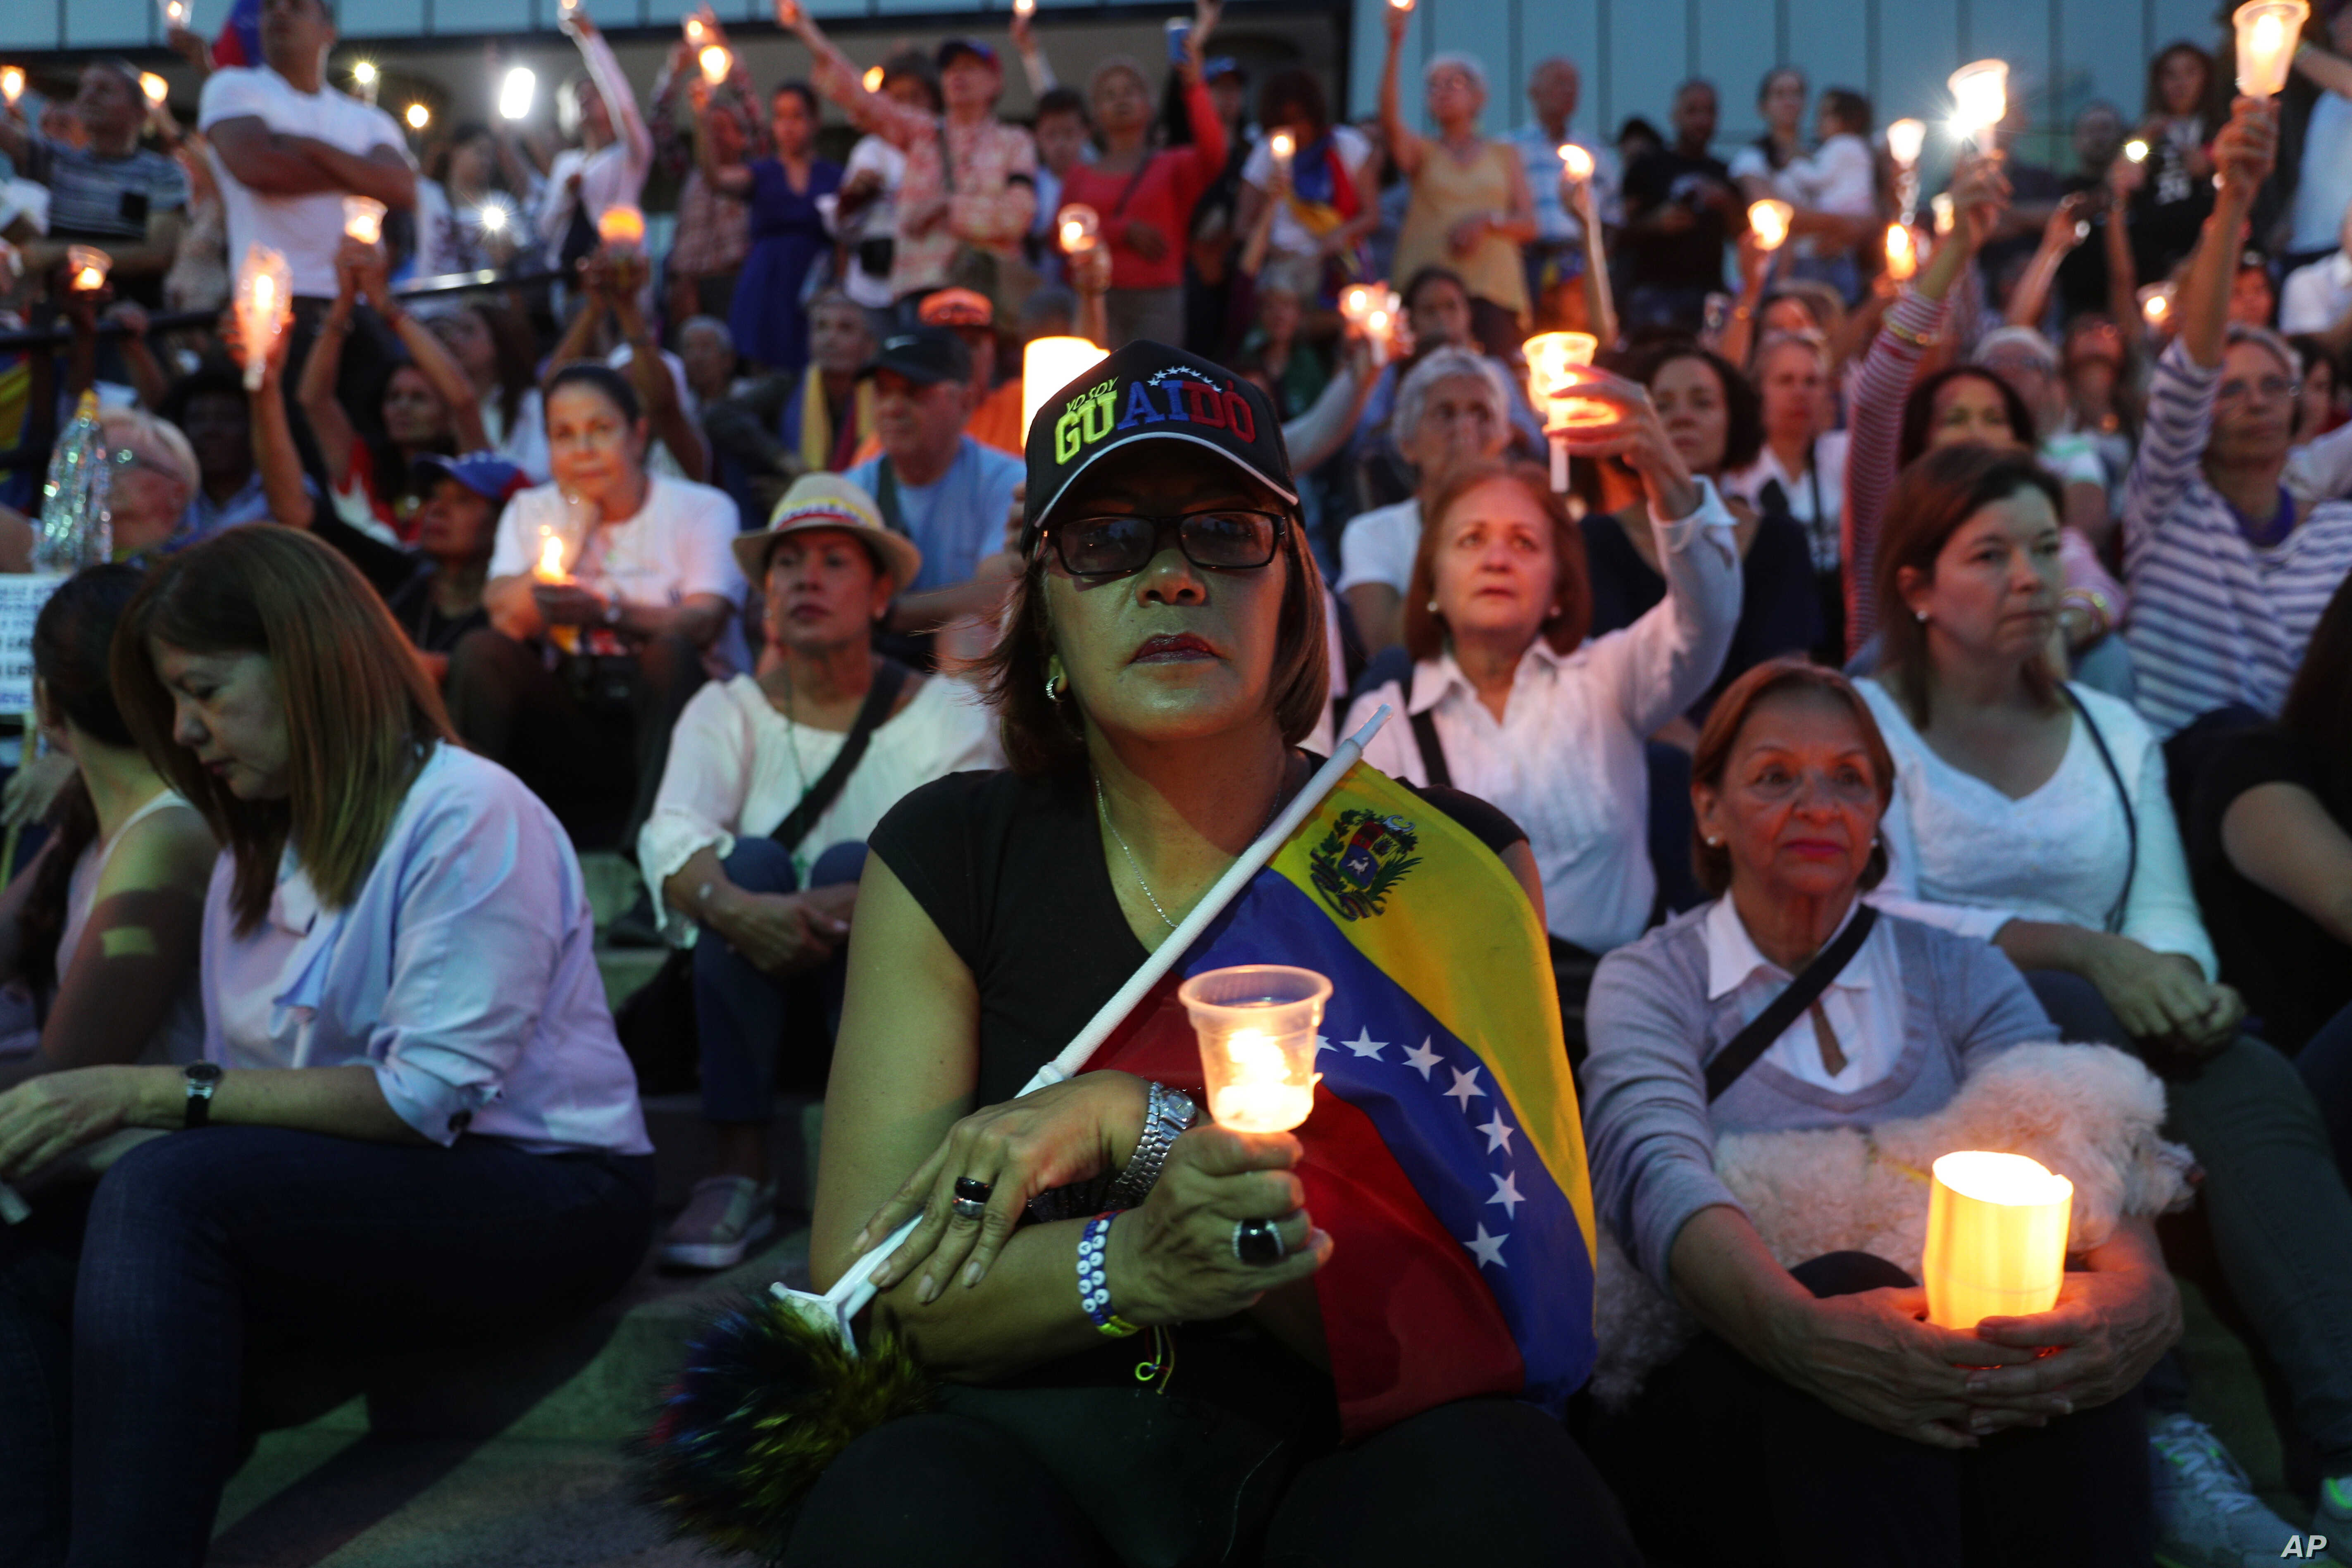 Opponents to Venezuela's President Nicolas Maduro hold a vigil for those killed in street fighting over the past week in Caracas, Venezuela, May 5, 2019.